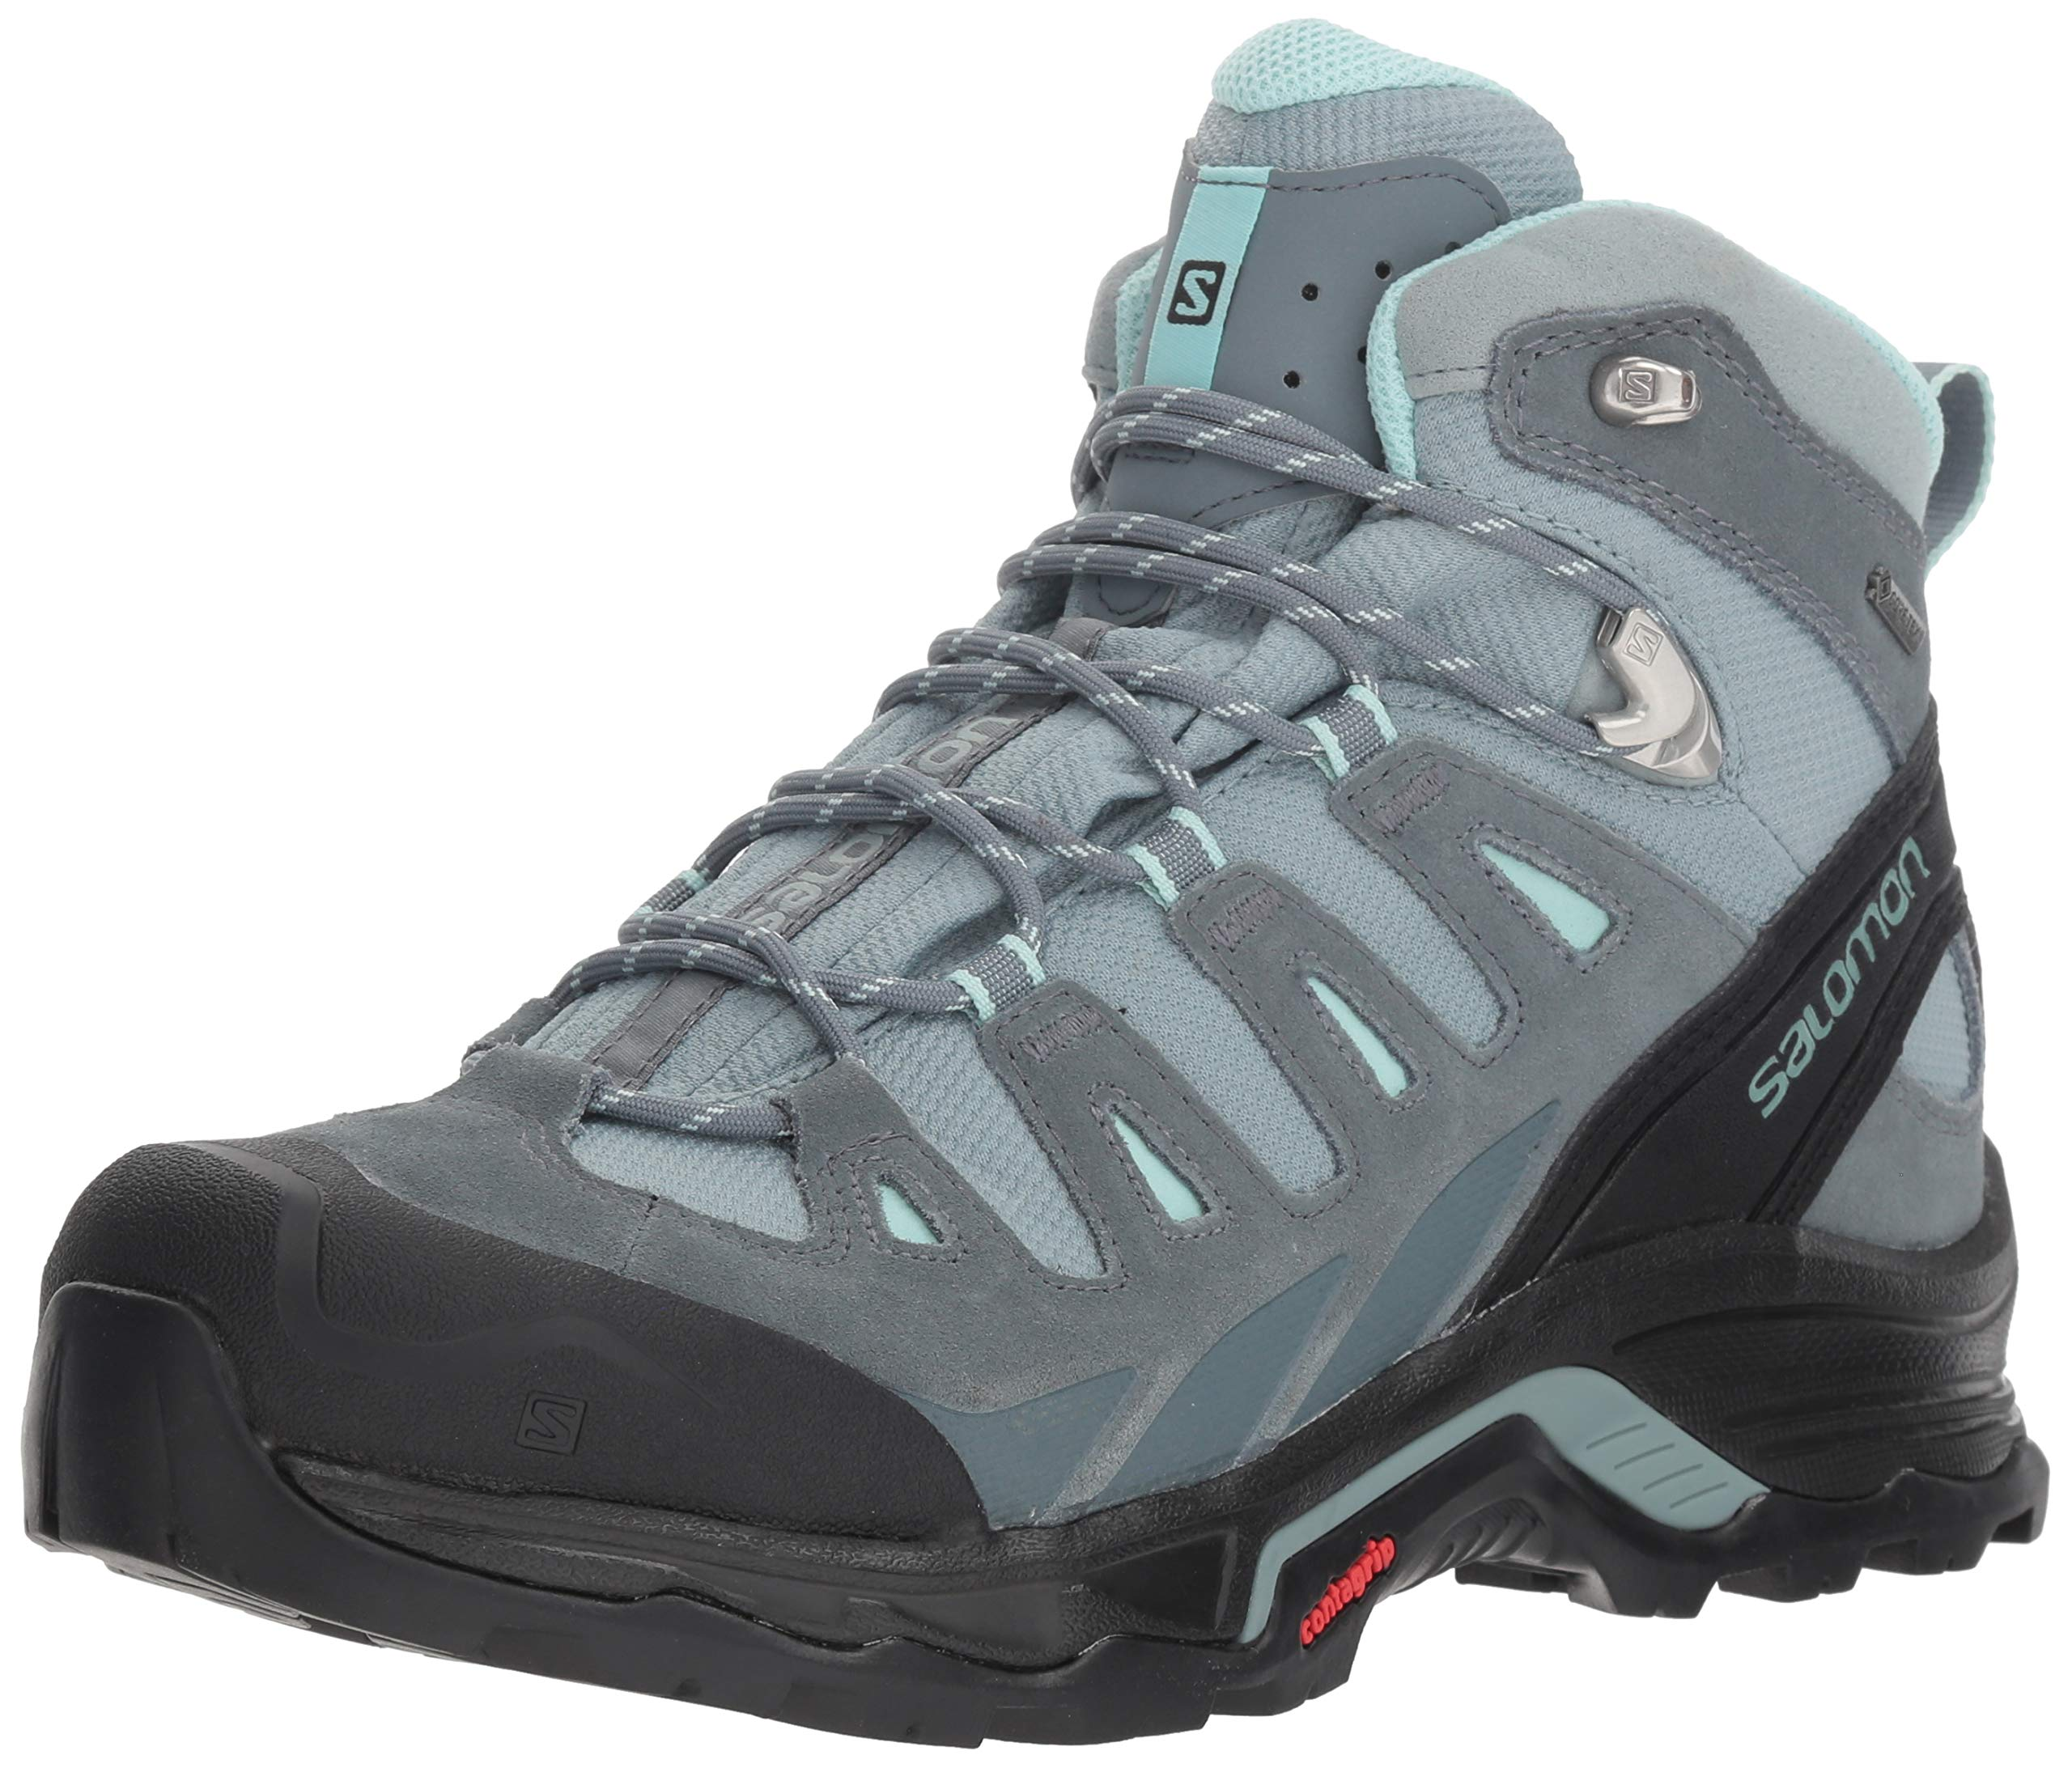 Salomon Women's Quest Prime GTX W Backpacking Boot, Lead/Stormy Weather/Eggshell Blue, 5 M US